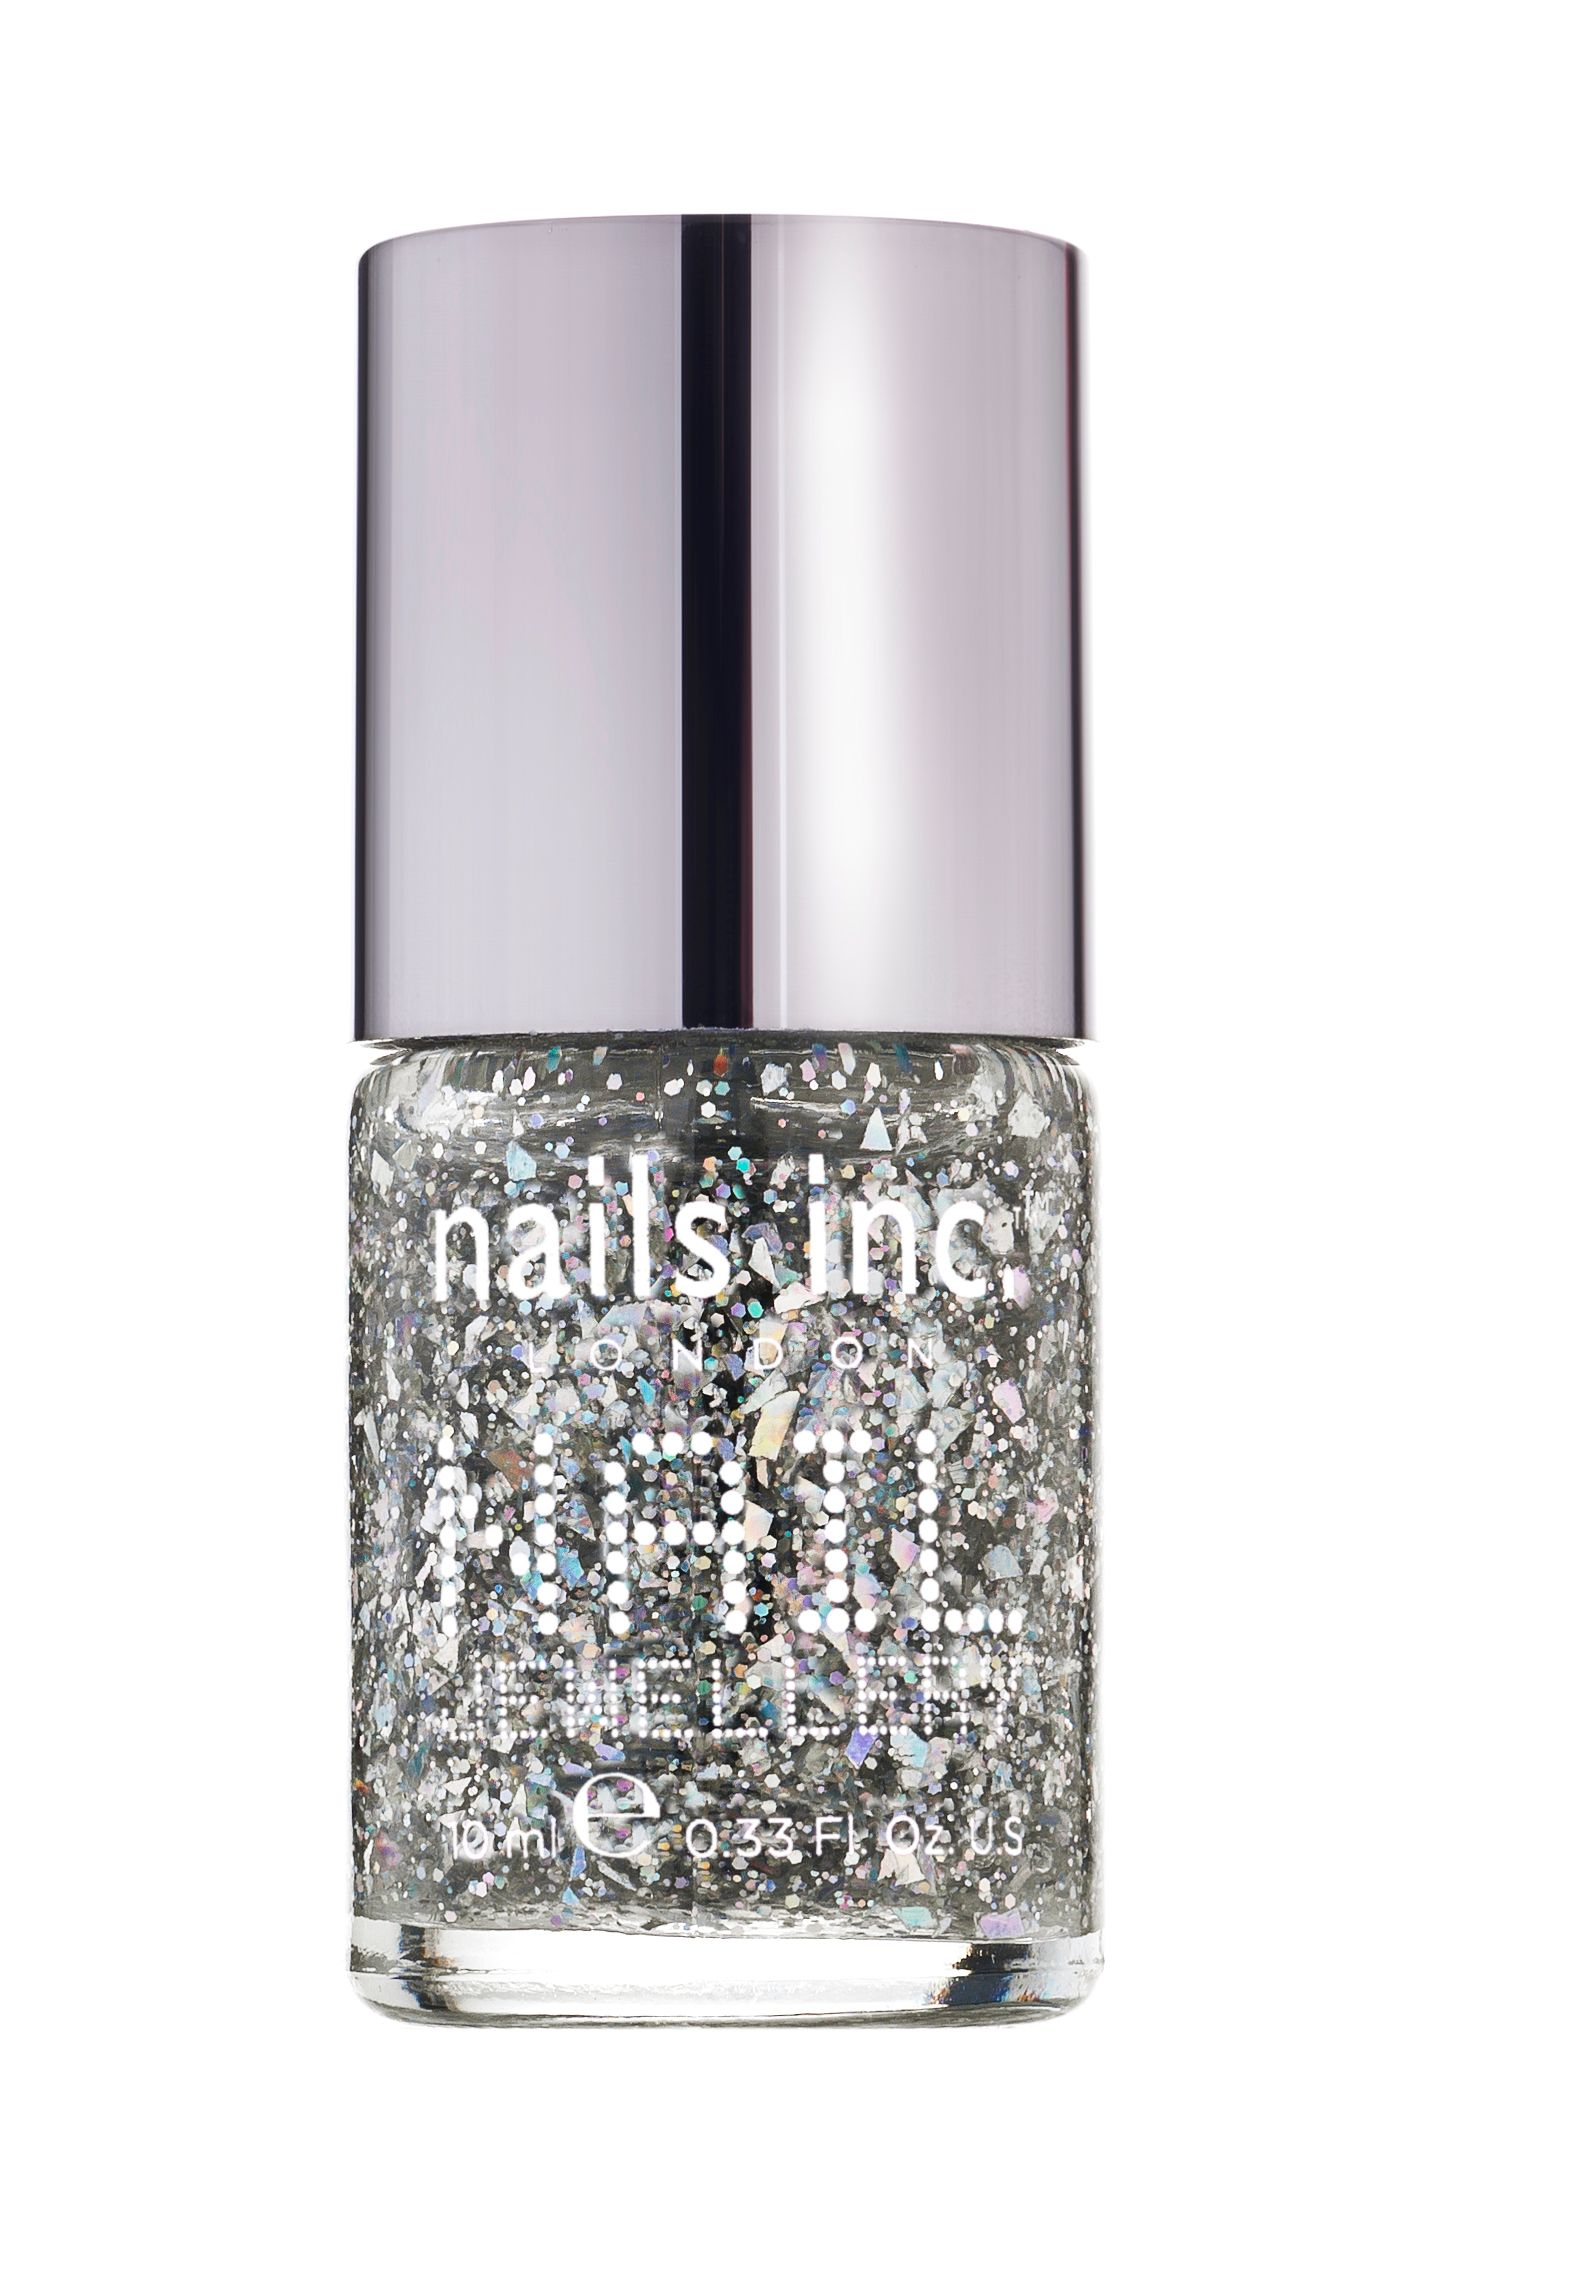 Burlington Arcade Nail Jewellery Polish